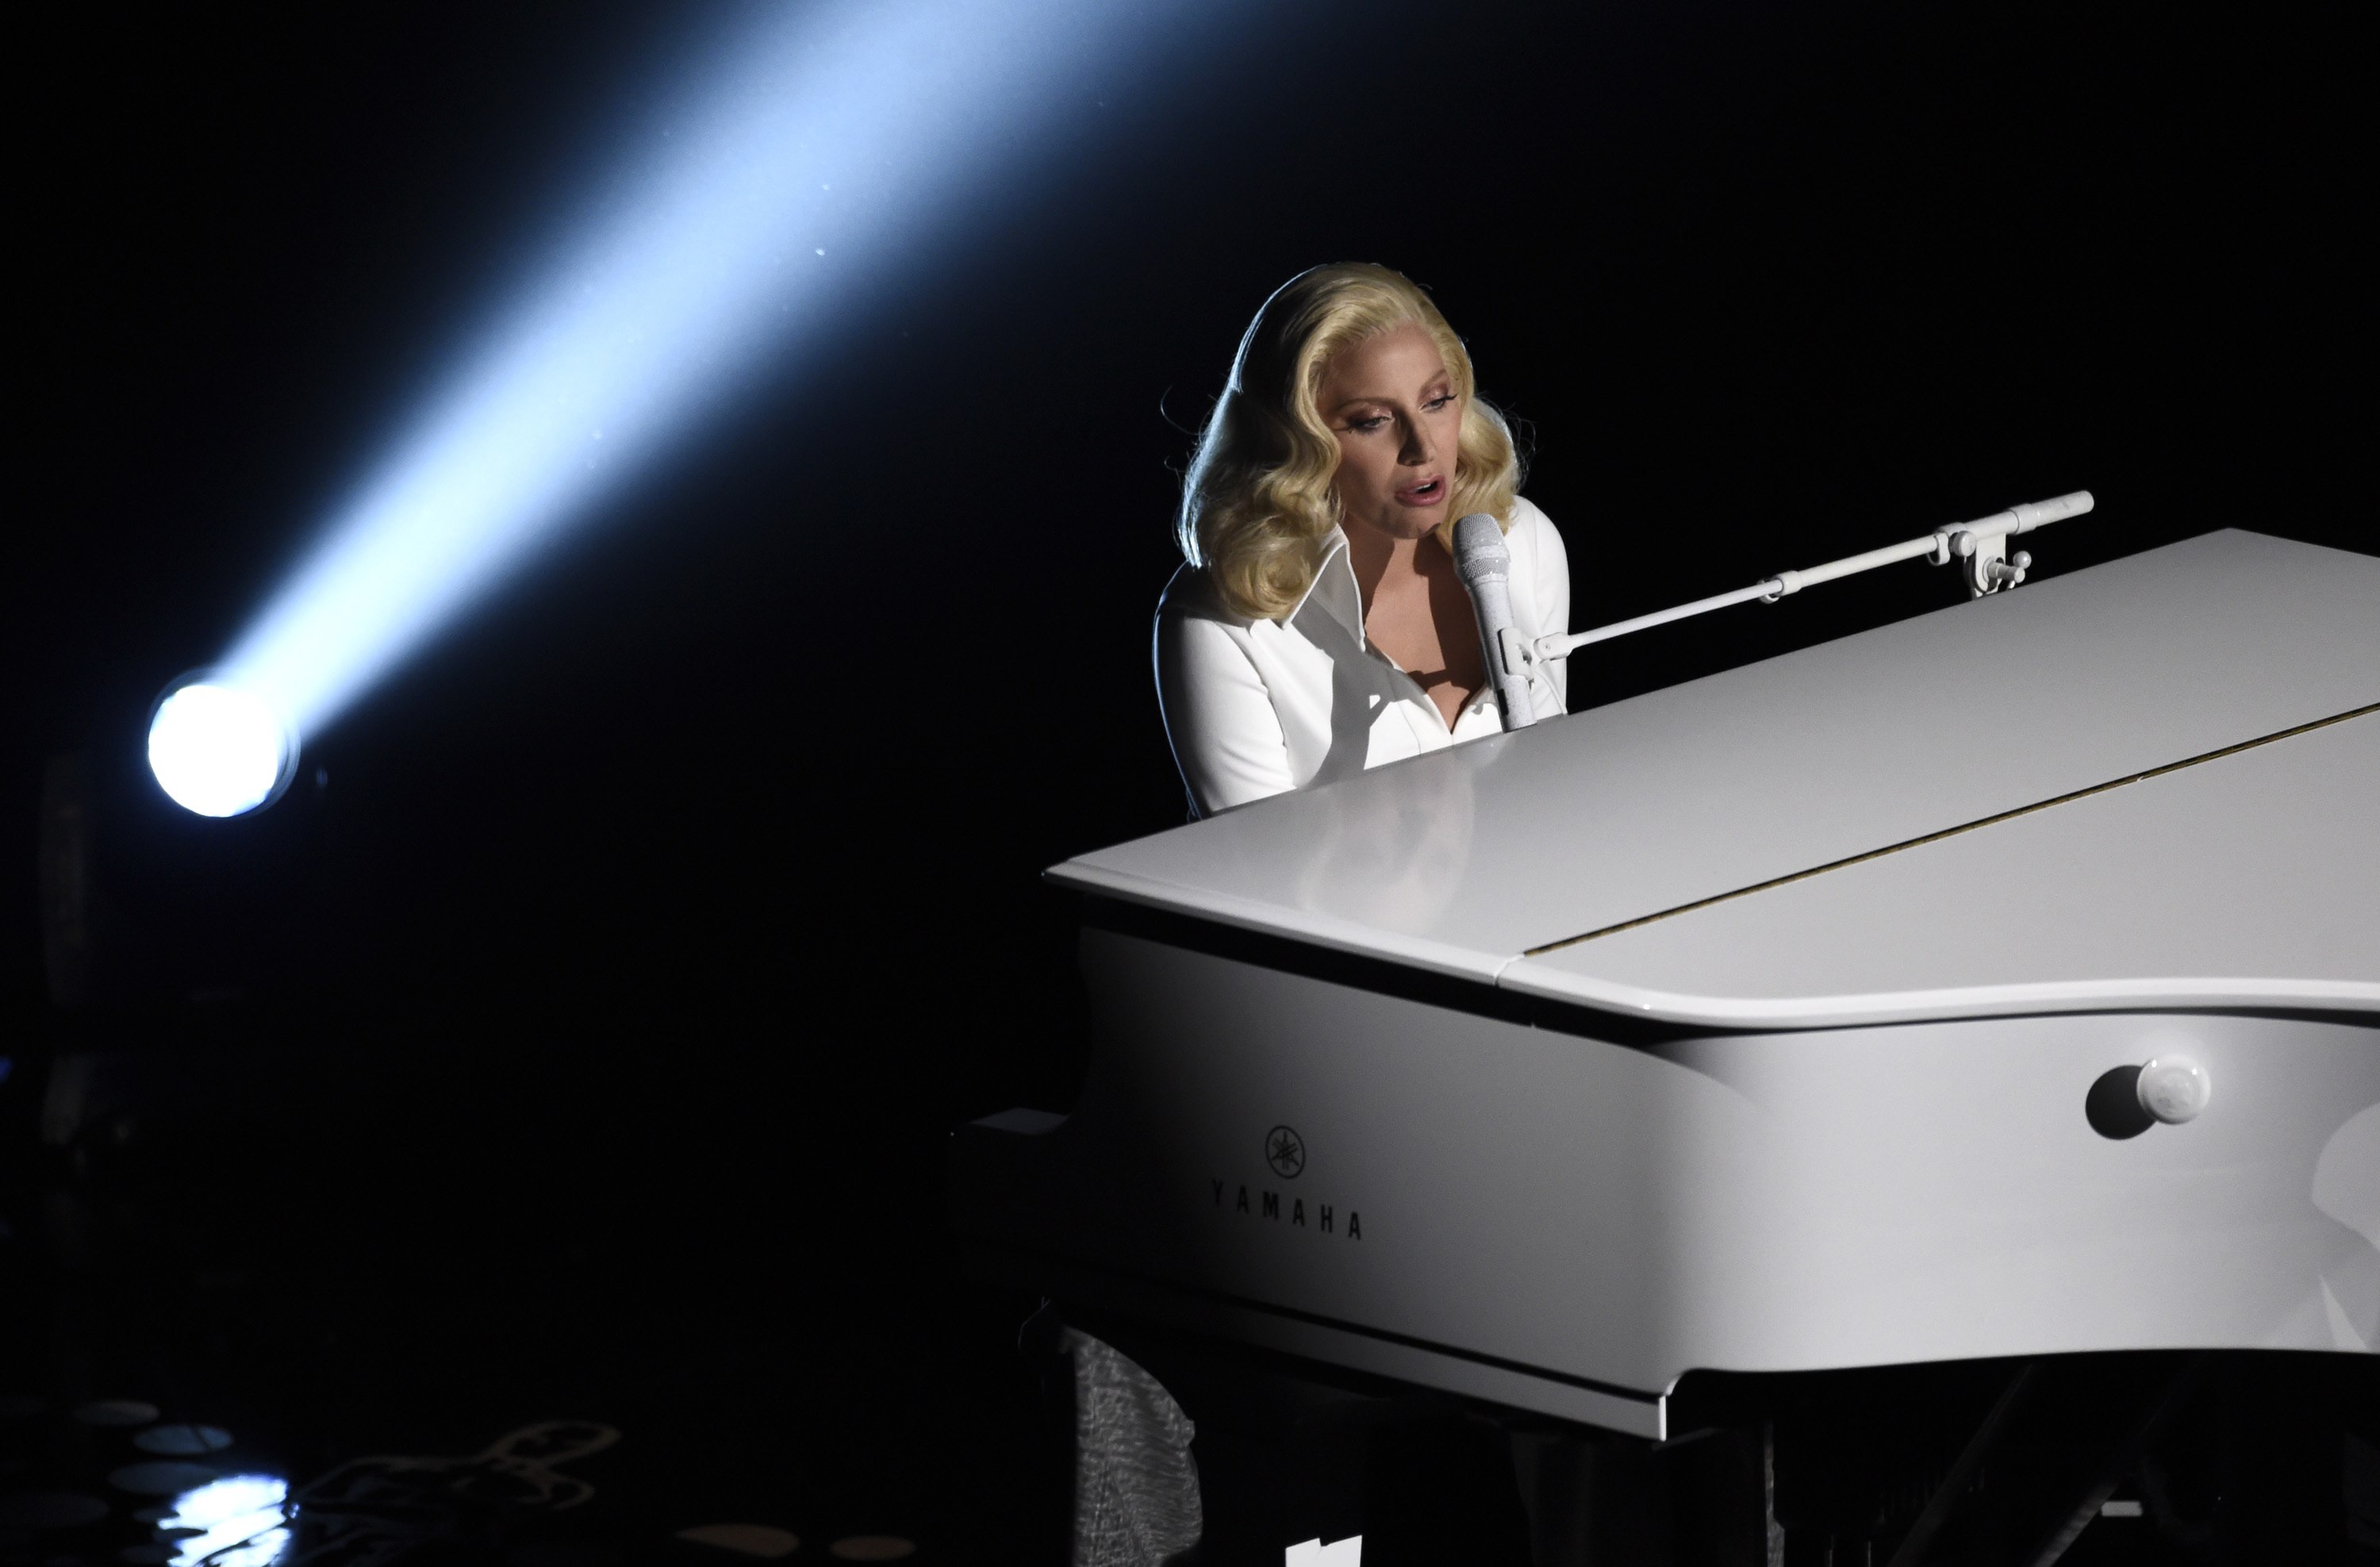 Lady Gaga's grandma couldn't be more proud of her Oscars performance